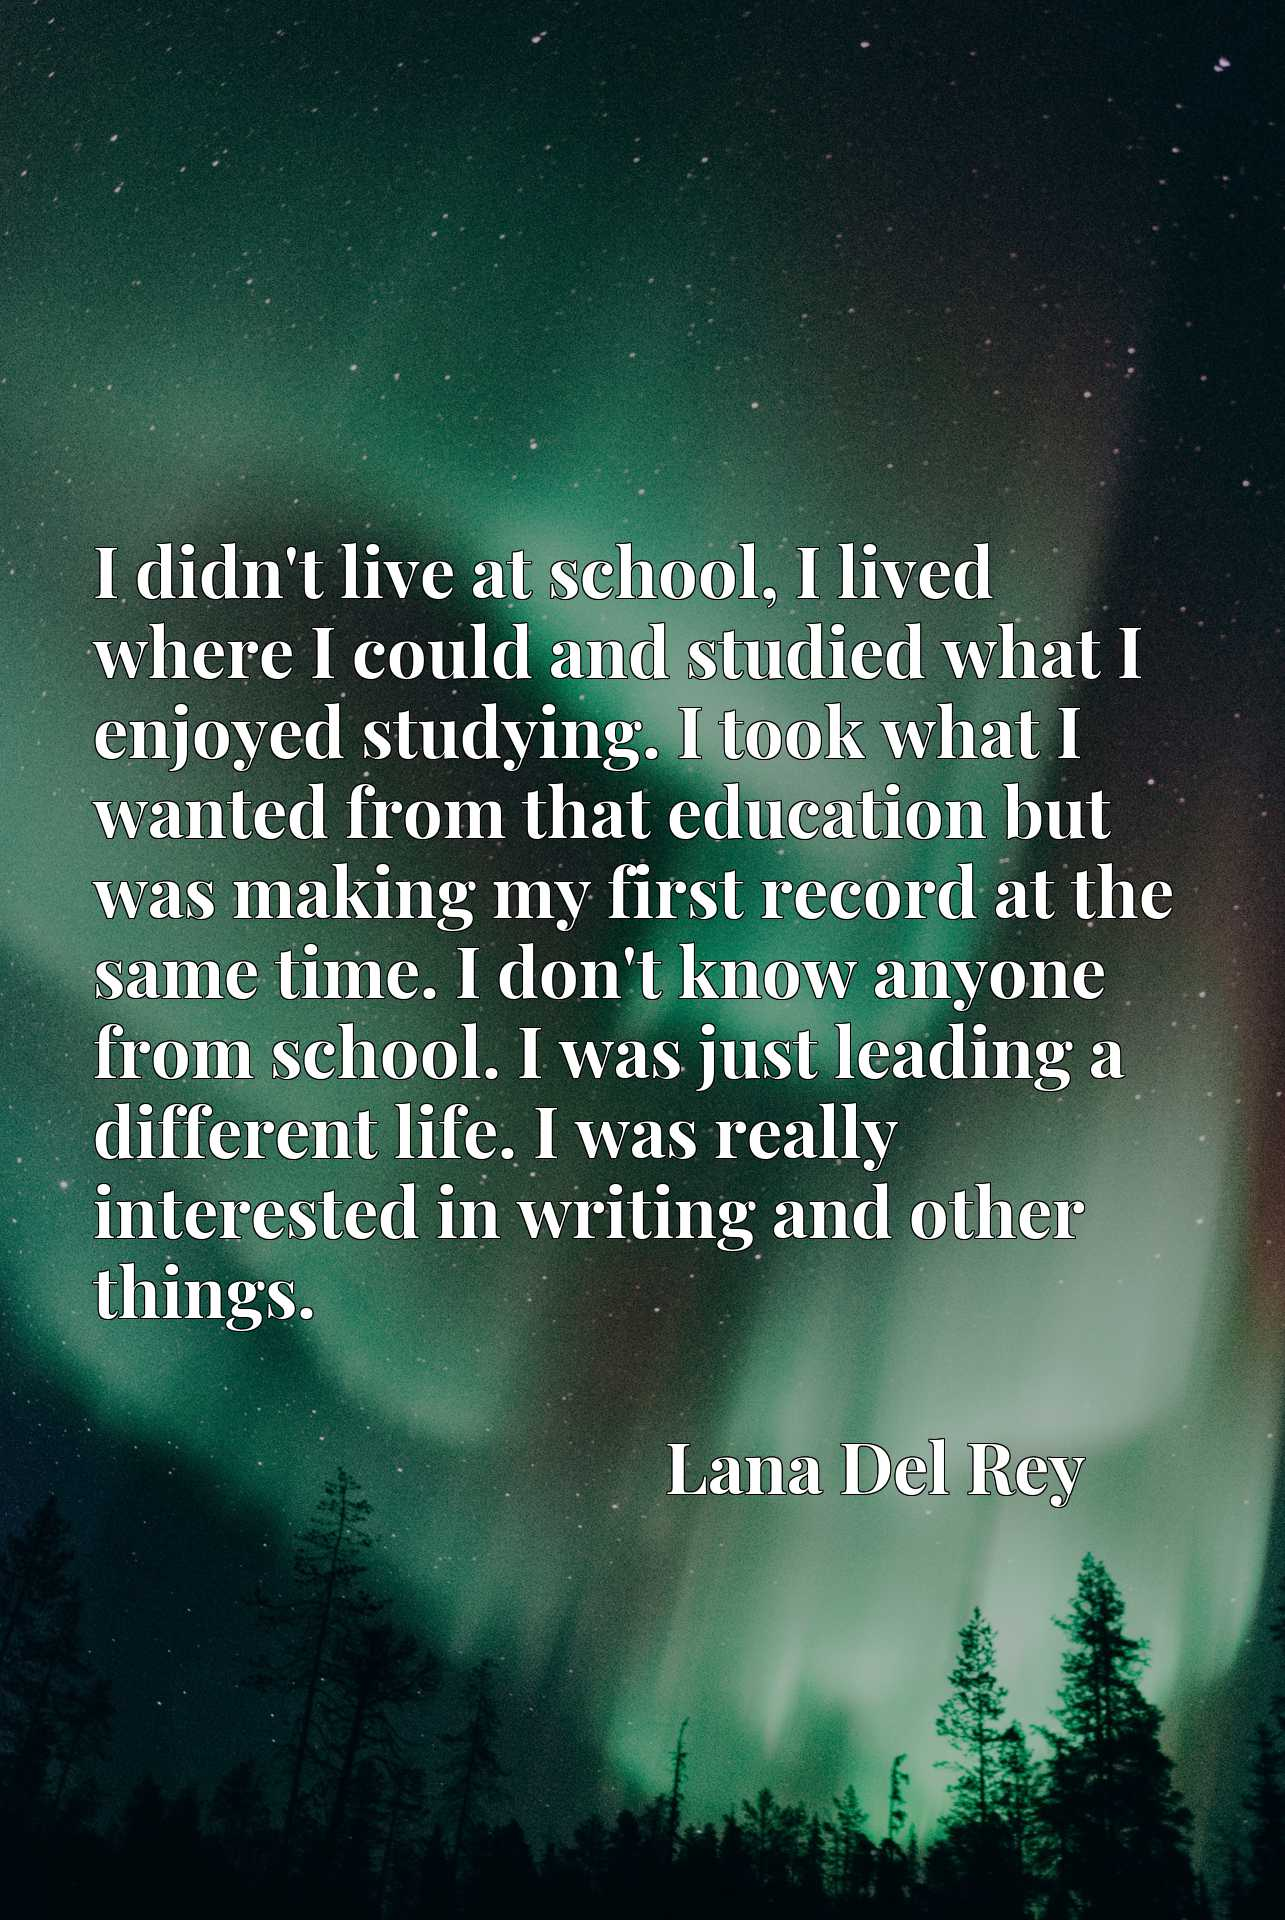 I didn't live at school, I lived where I could and studied what I enjoyed studying. I took what I wanted from that education but was making my first record at the same time. I don't know anyone from school. I was just leading a different life. I was really interested in writing and other things.